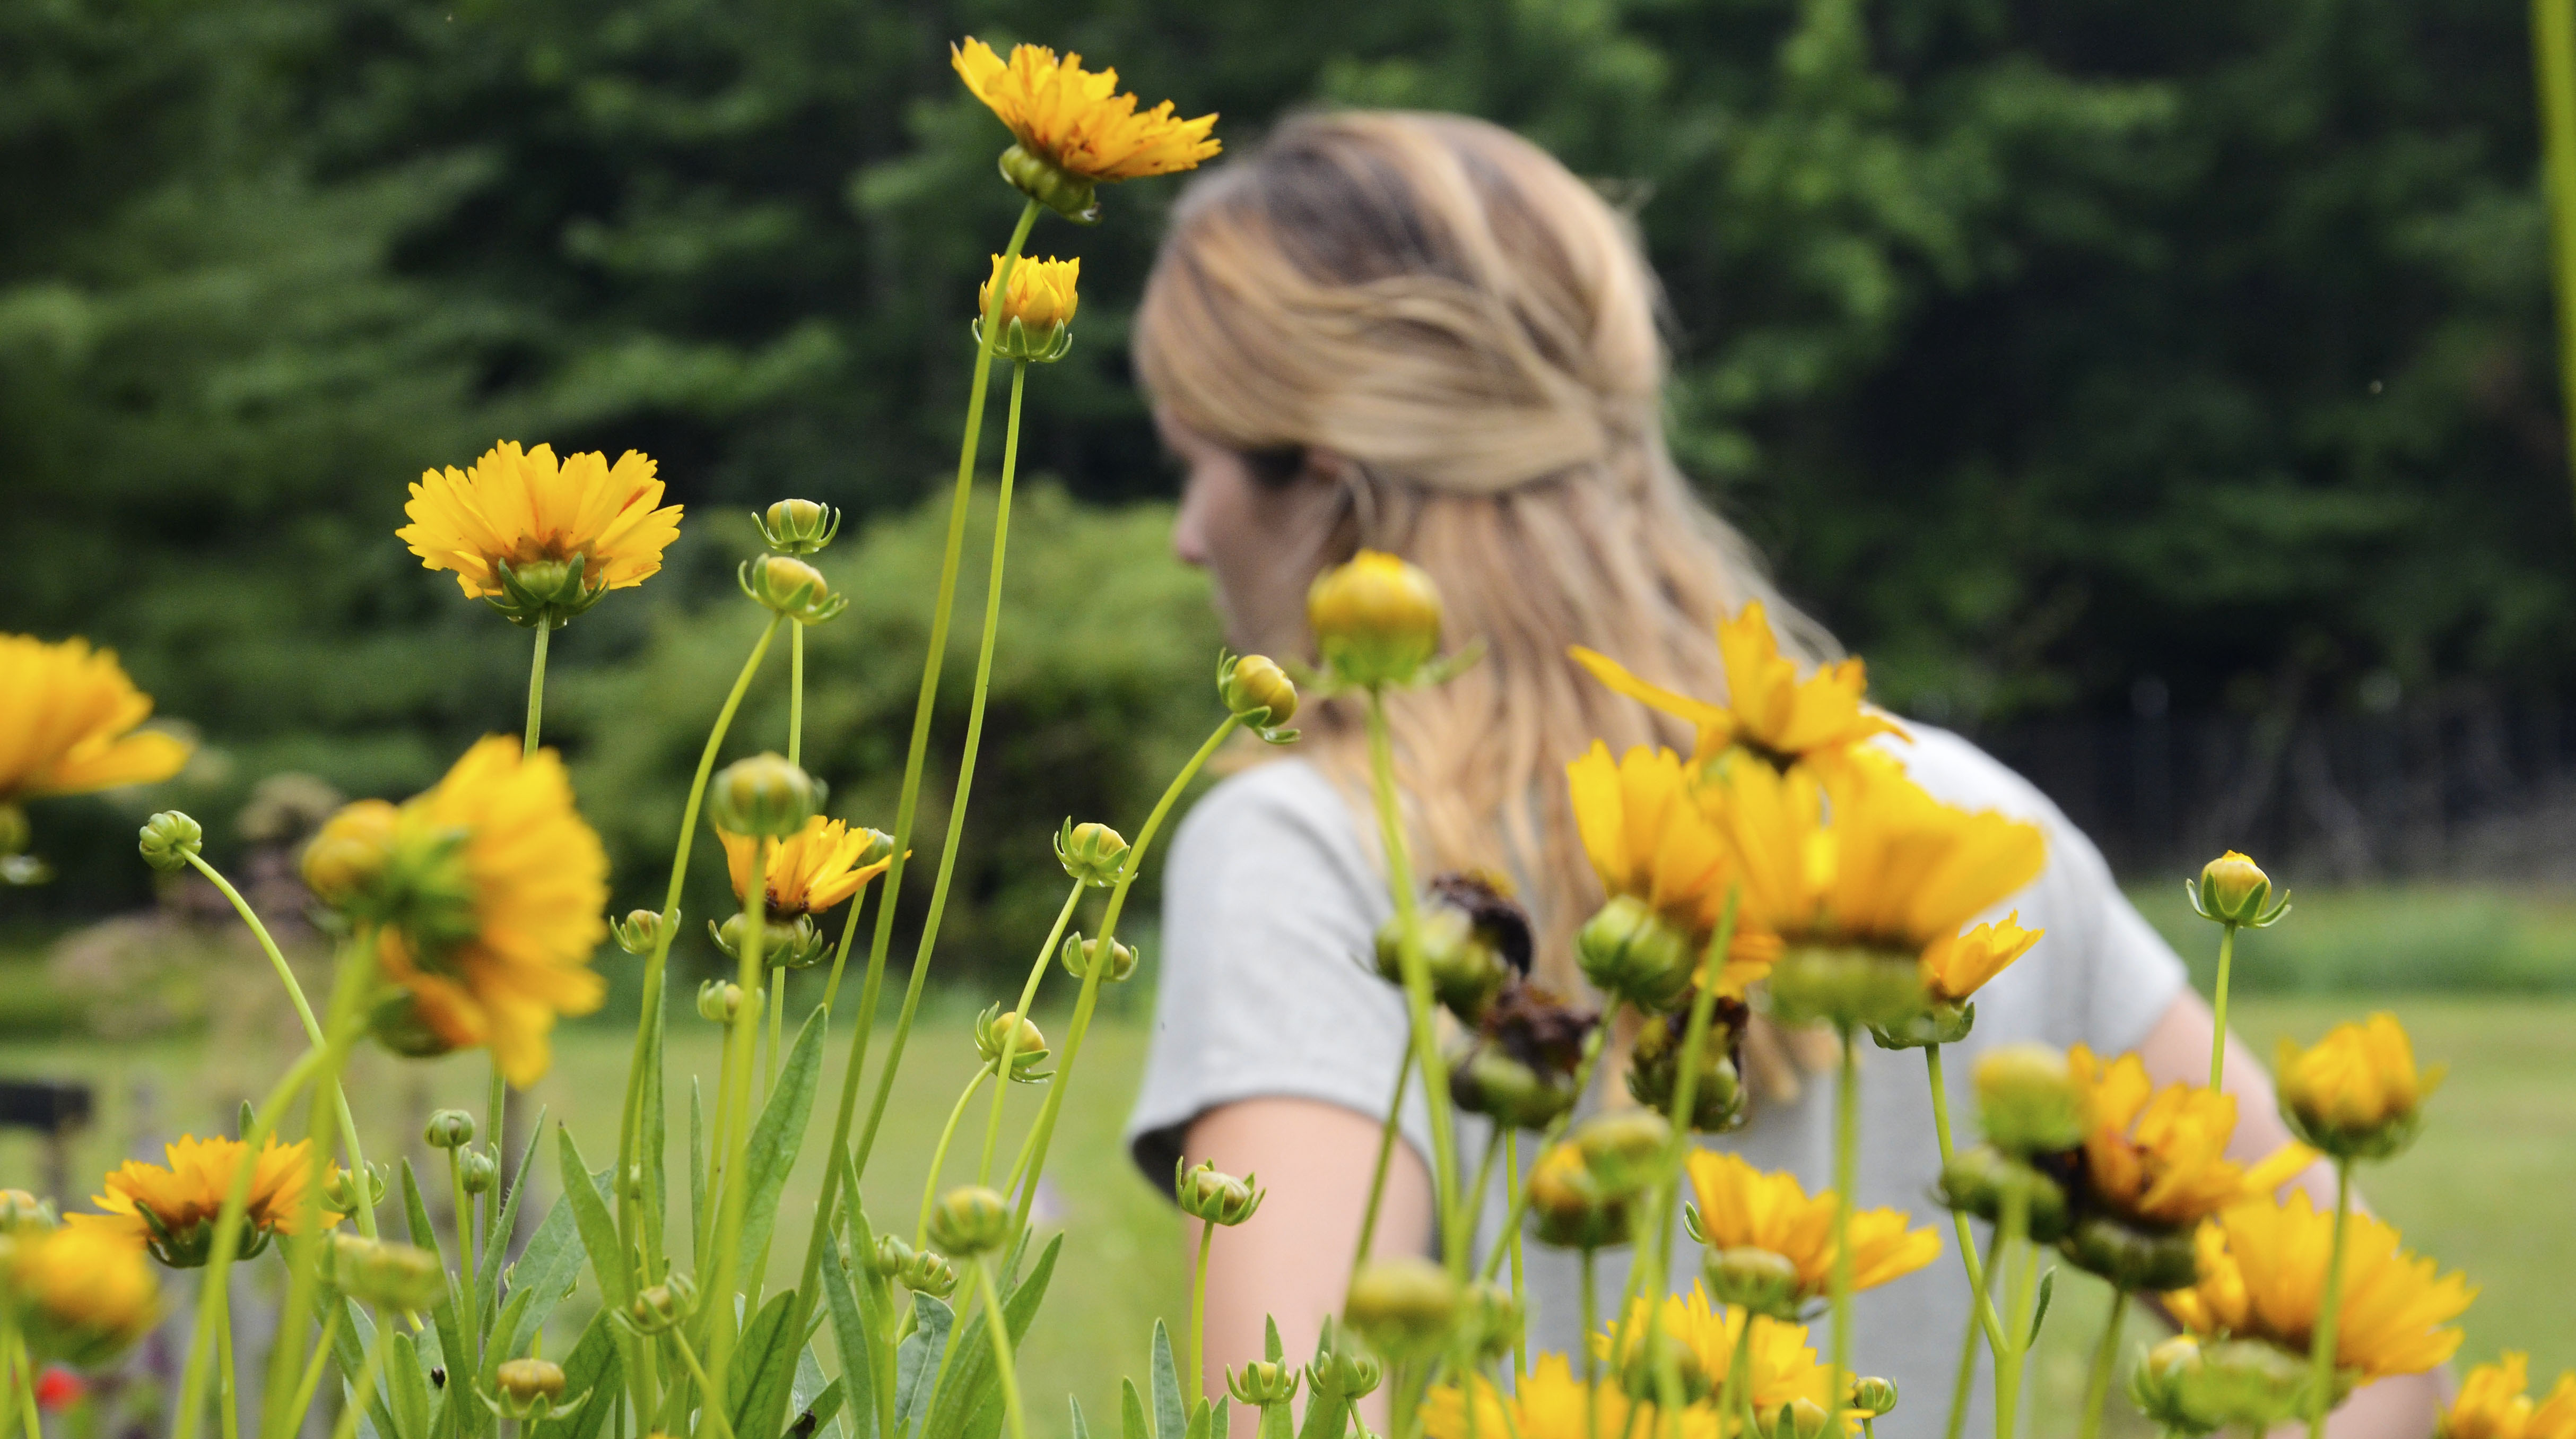 girl walking with flowers in foreground